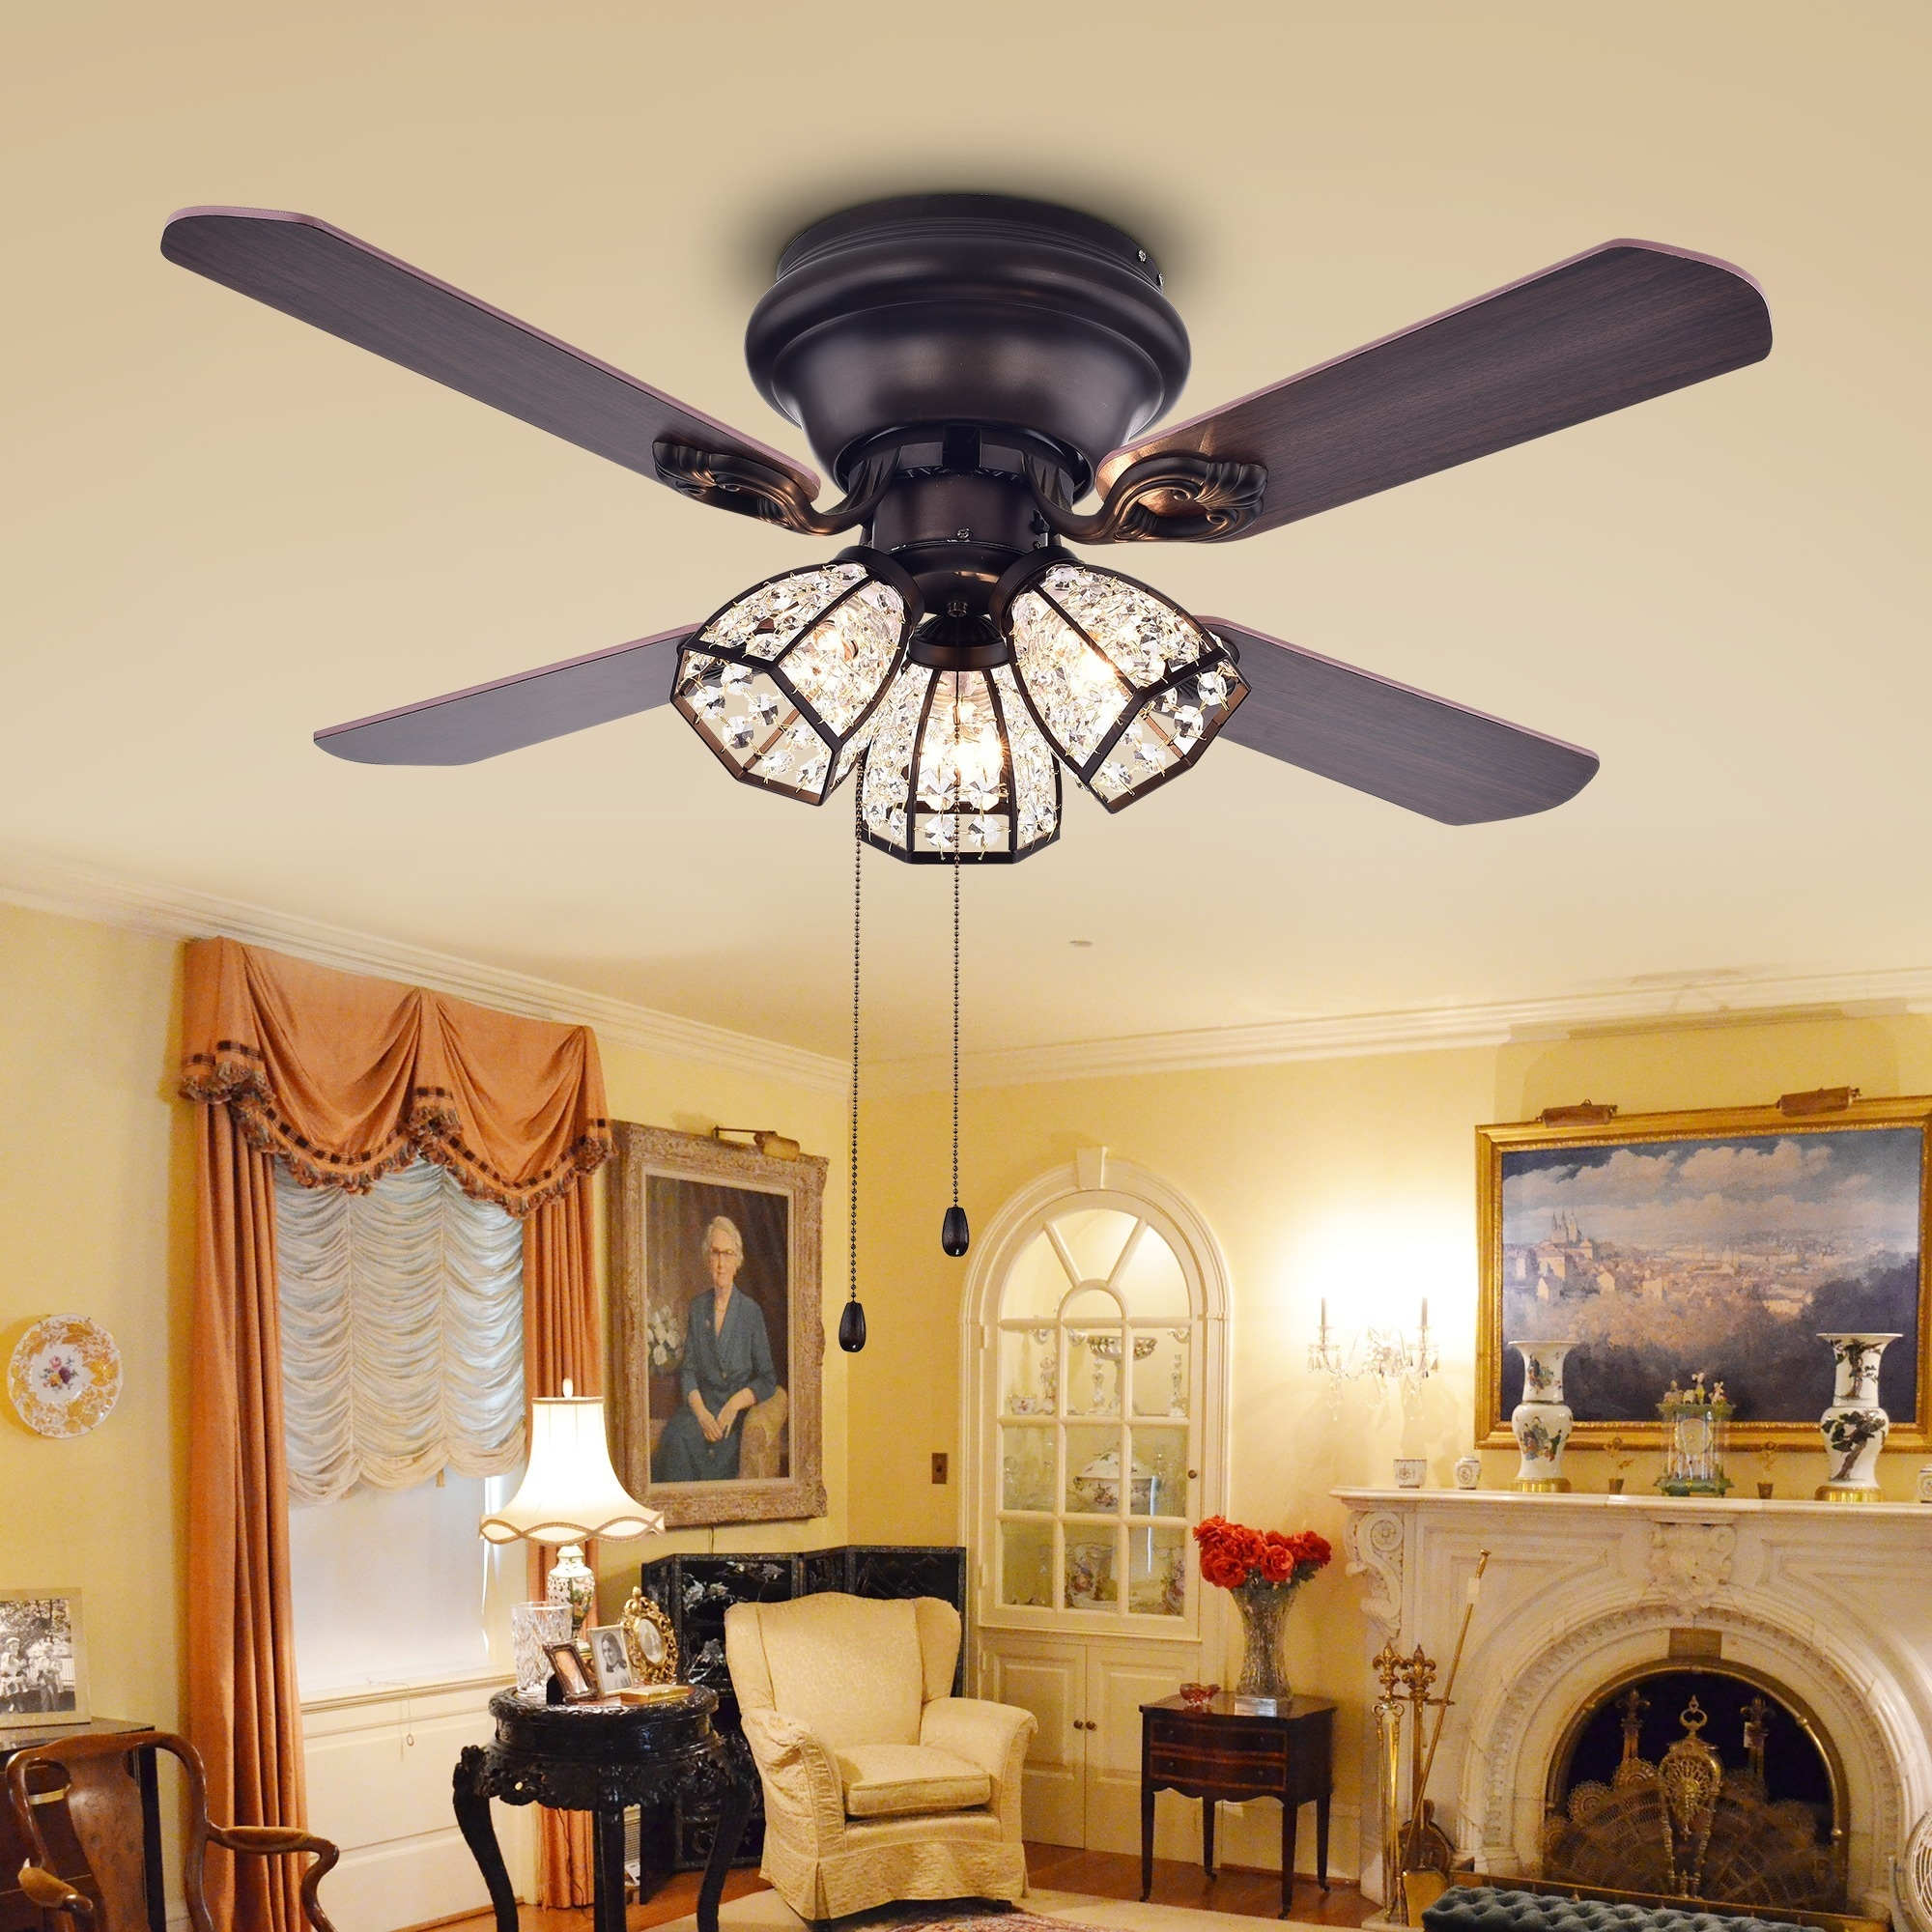 42 inch ceiling fan with remote led ceiling shop tarudor 3light crystal 4blade dark wood with antique bronze housing 52inch ceiling fan optional remote on sale free shipping today